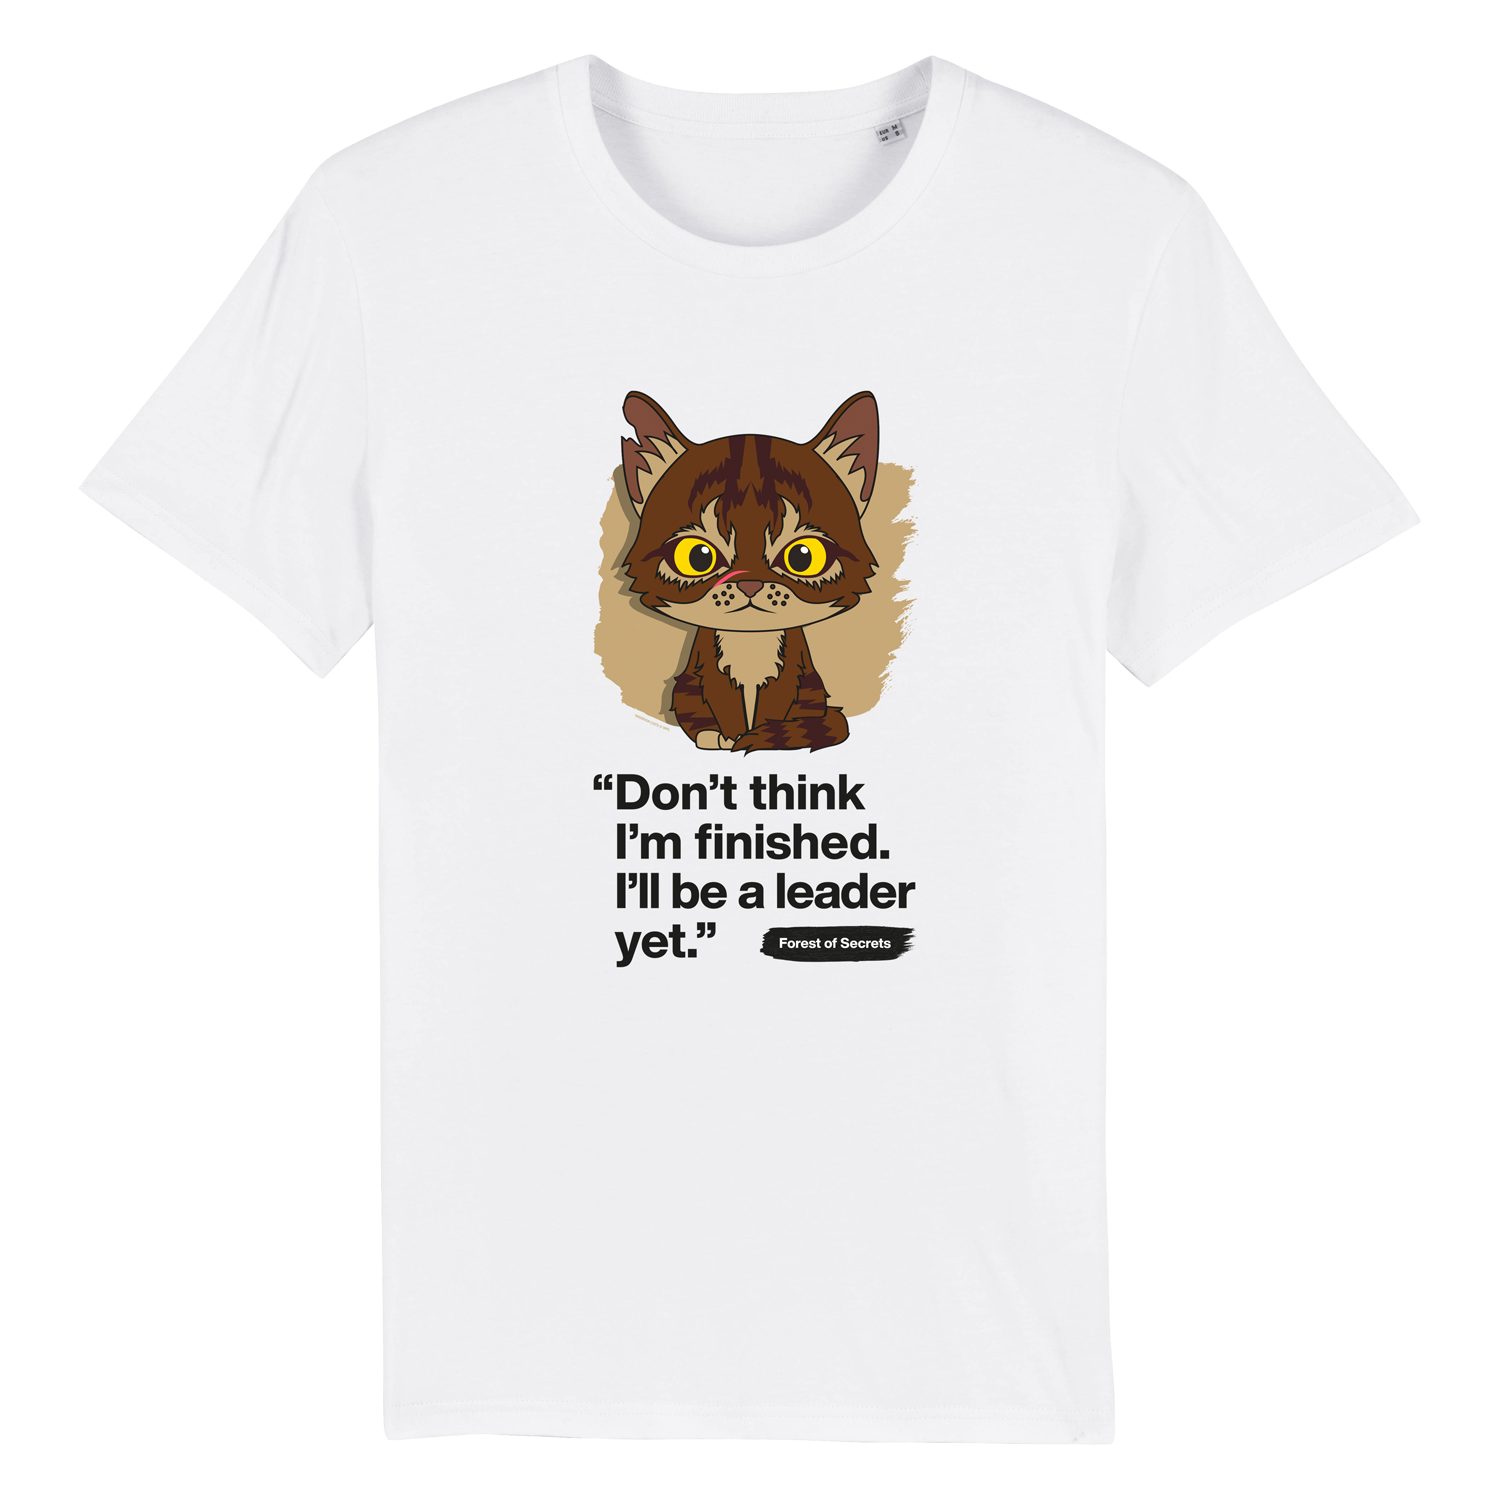 Don't think I'm finished - Tigerstar - Youth Unisex T-Shirt